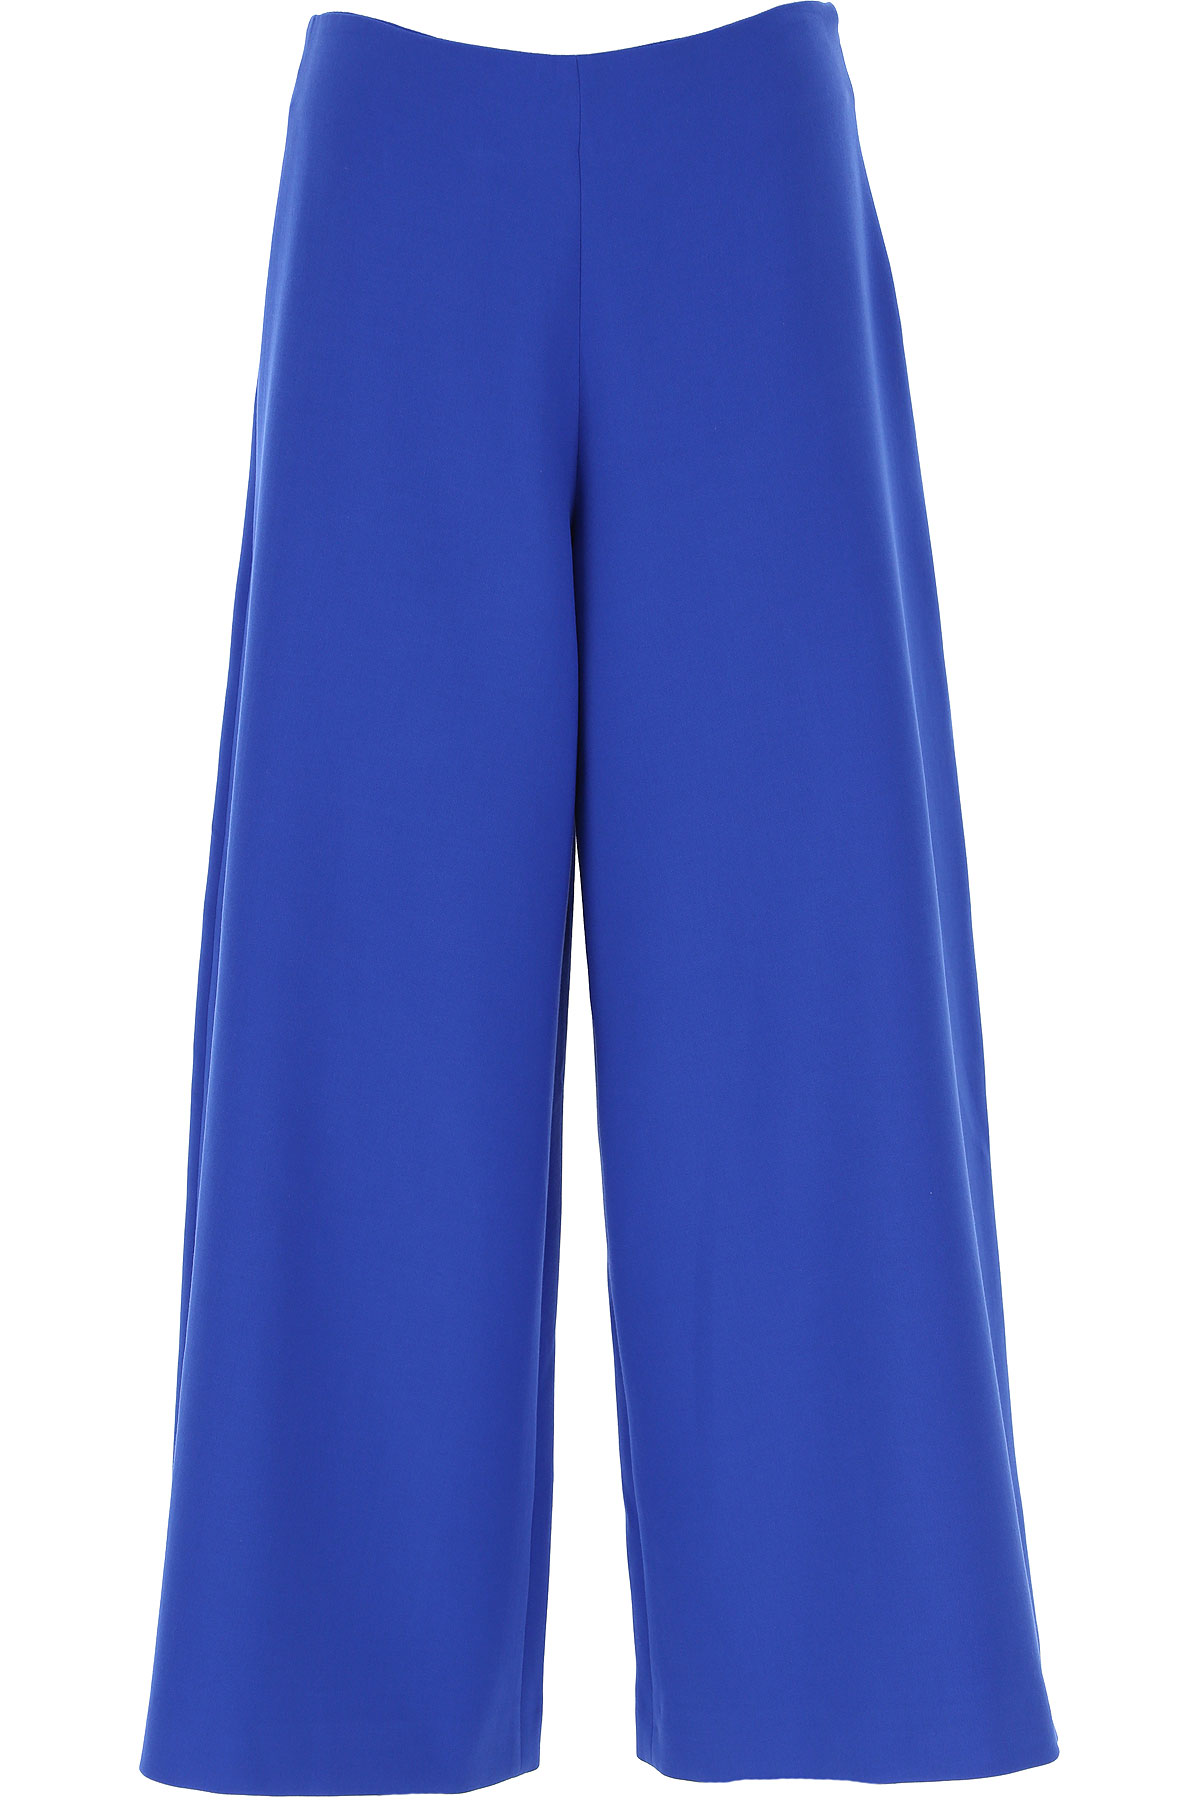 Vivetta Pants for Women On Sale, Blue, polyester, 2019, 26 28 30